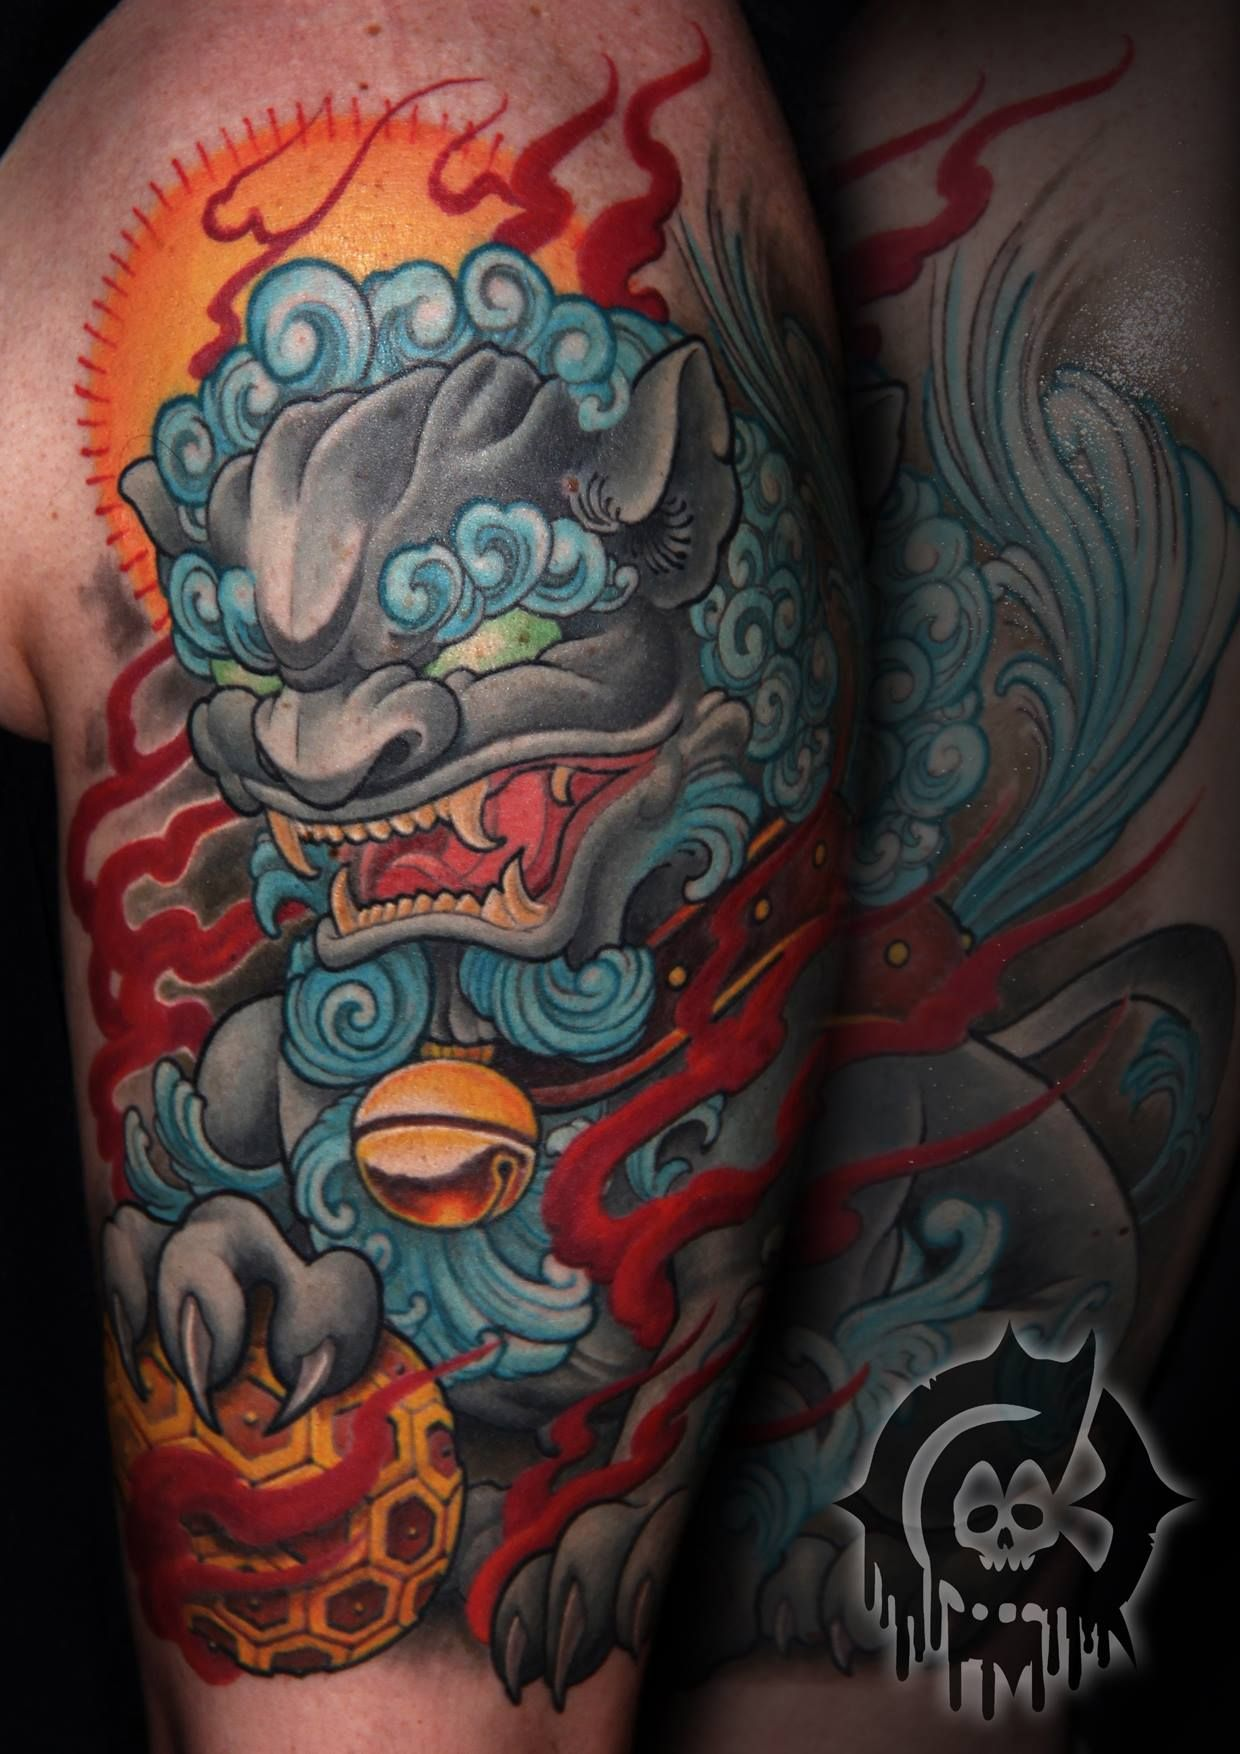 Pin by Steven etzel on Ink Foo dog tattoo design, Foo